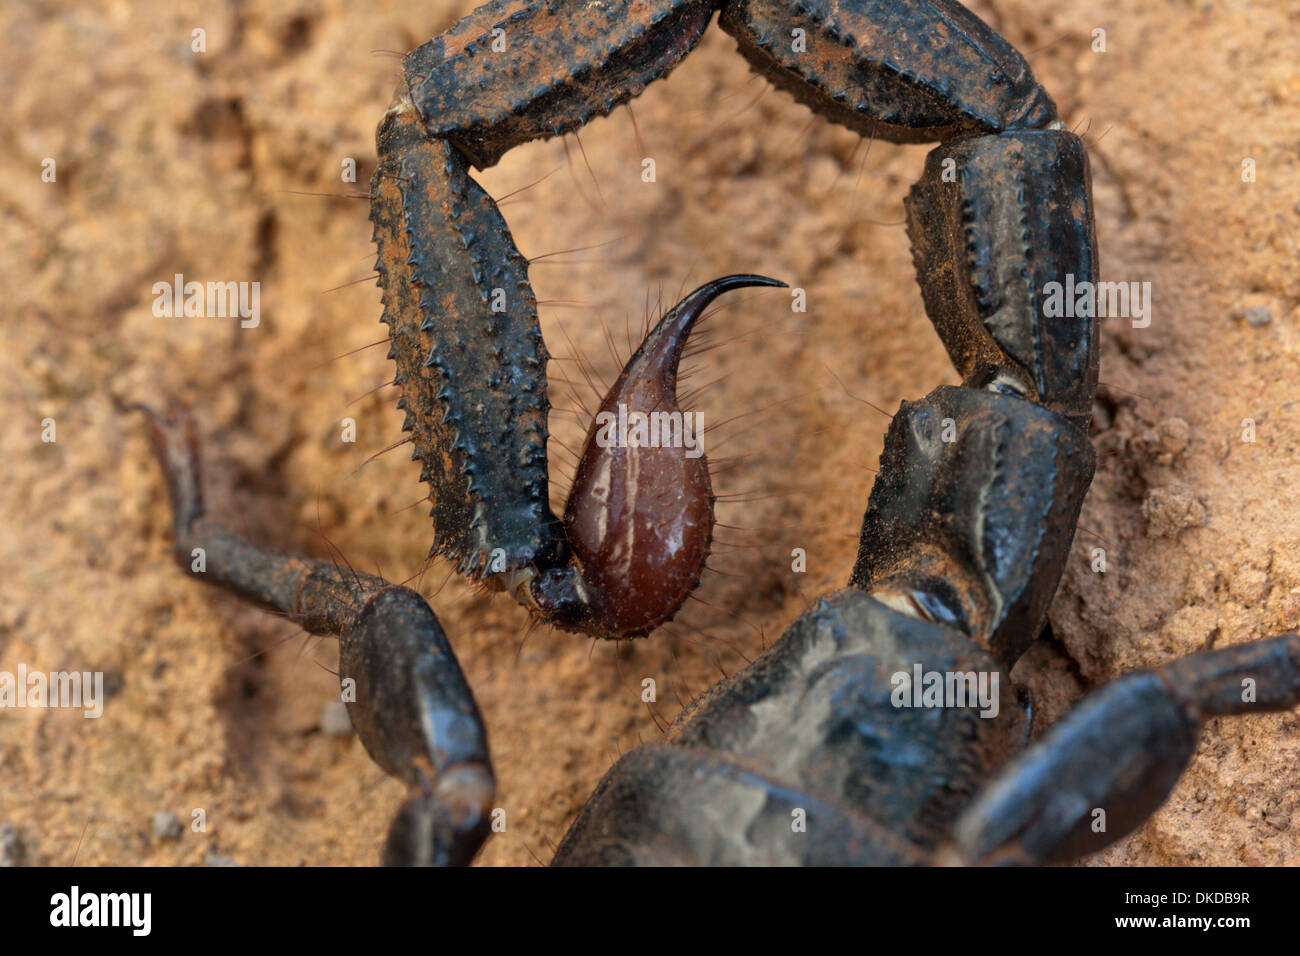 scorpion black poison venom dangerous stinging - Stock Image